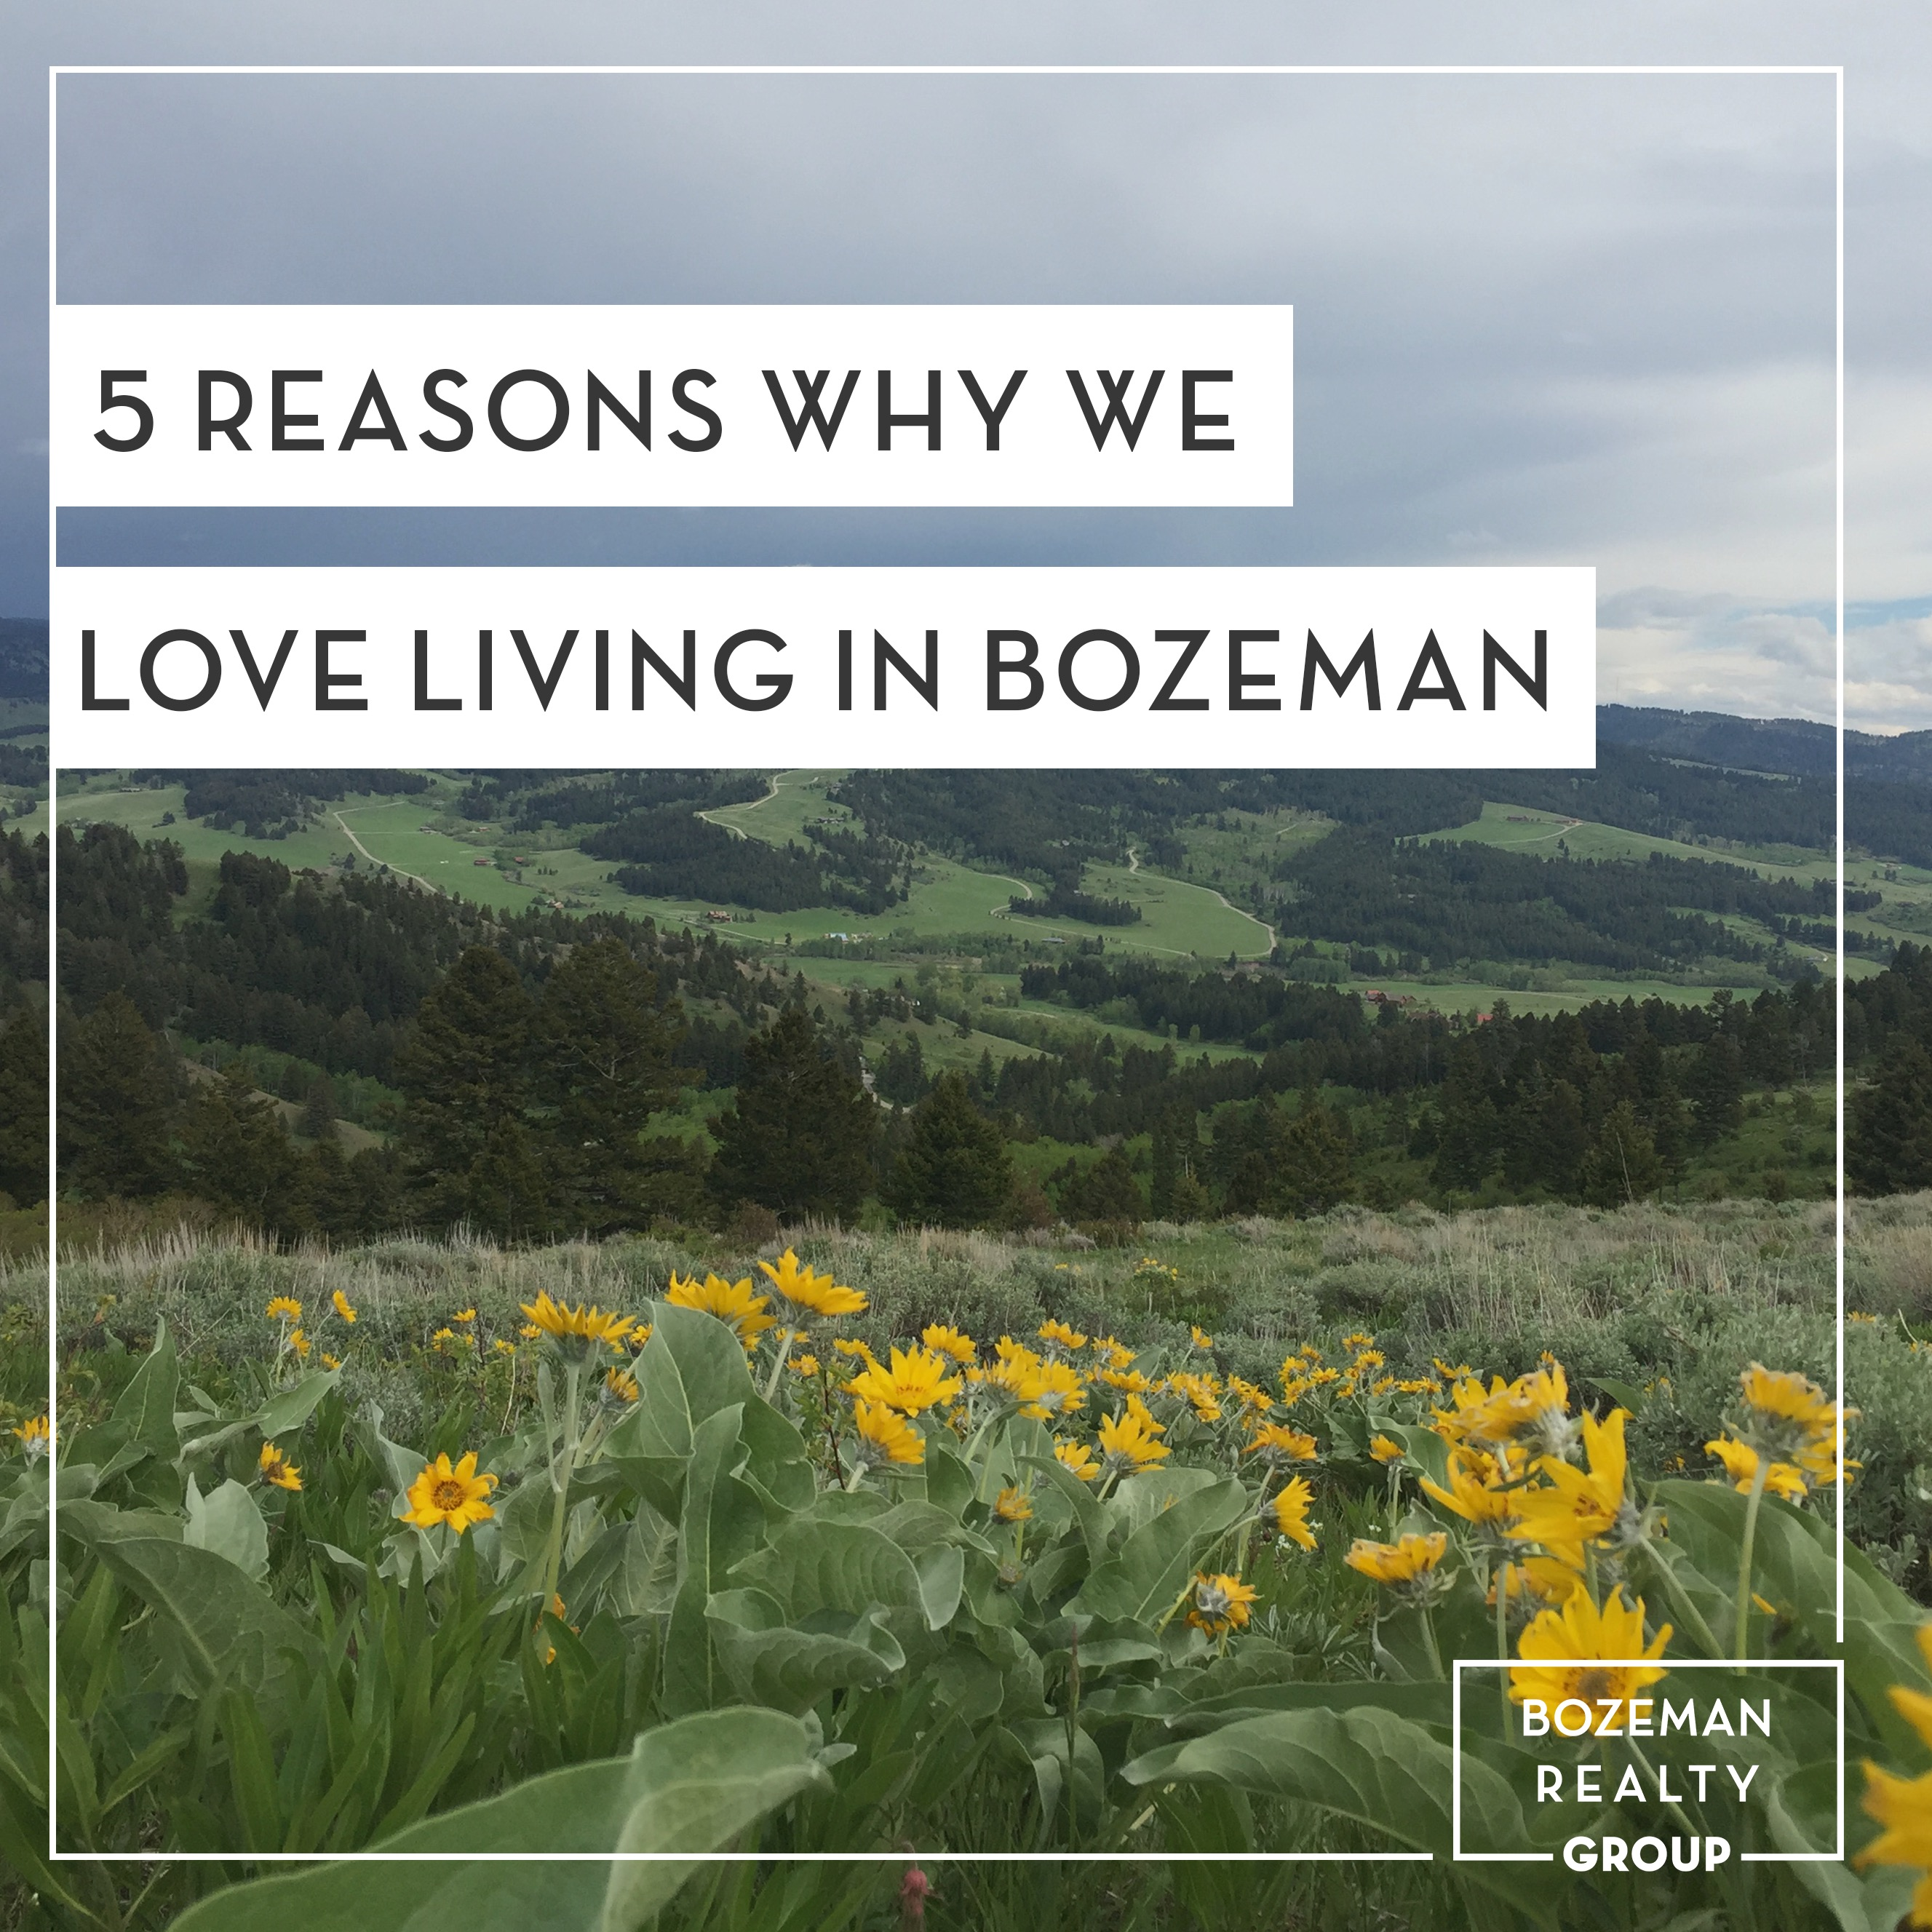 Living In Bozeman : 5 Reasons Why We Love Living in Bozeman - Bozeman Realty Group